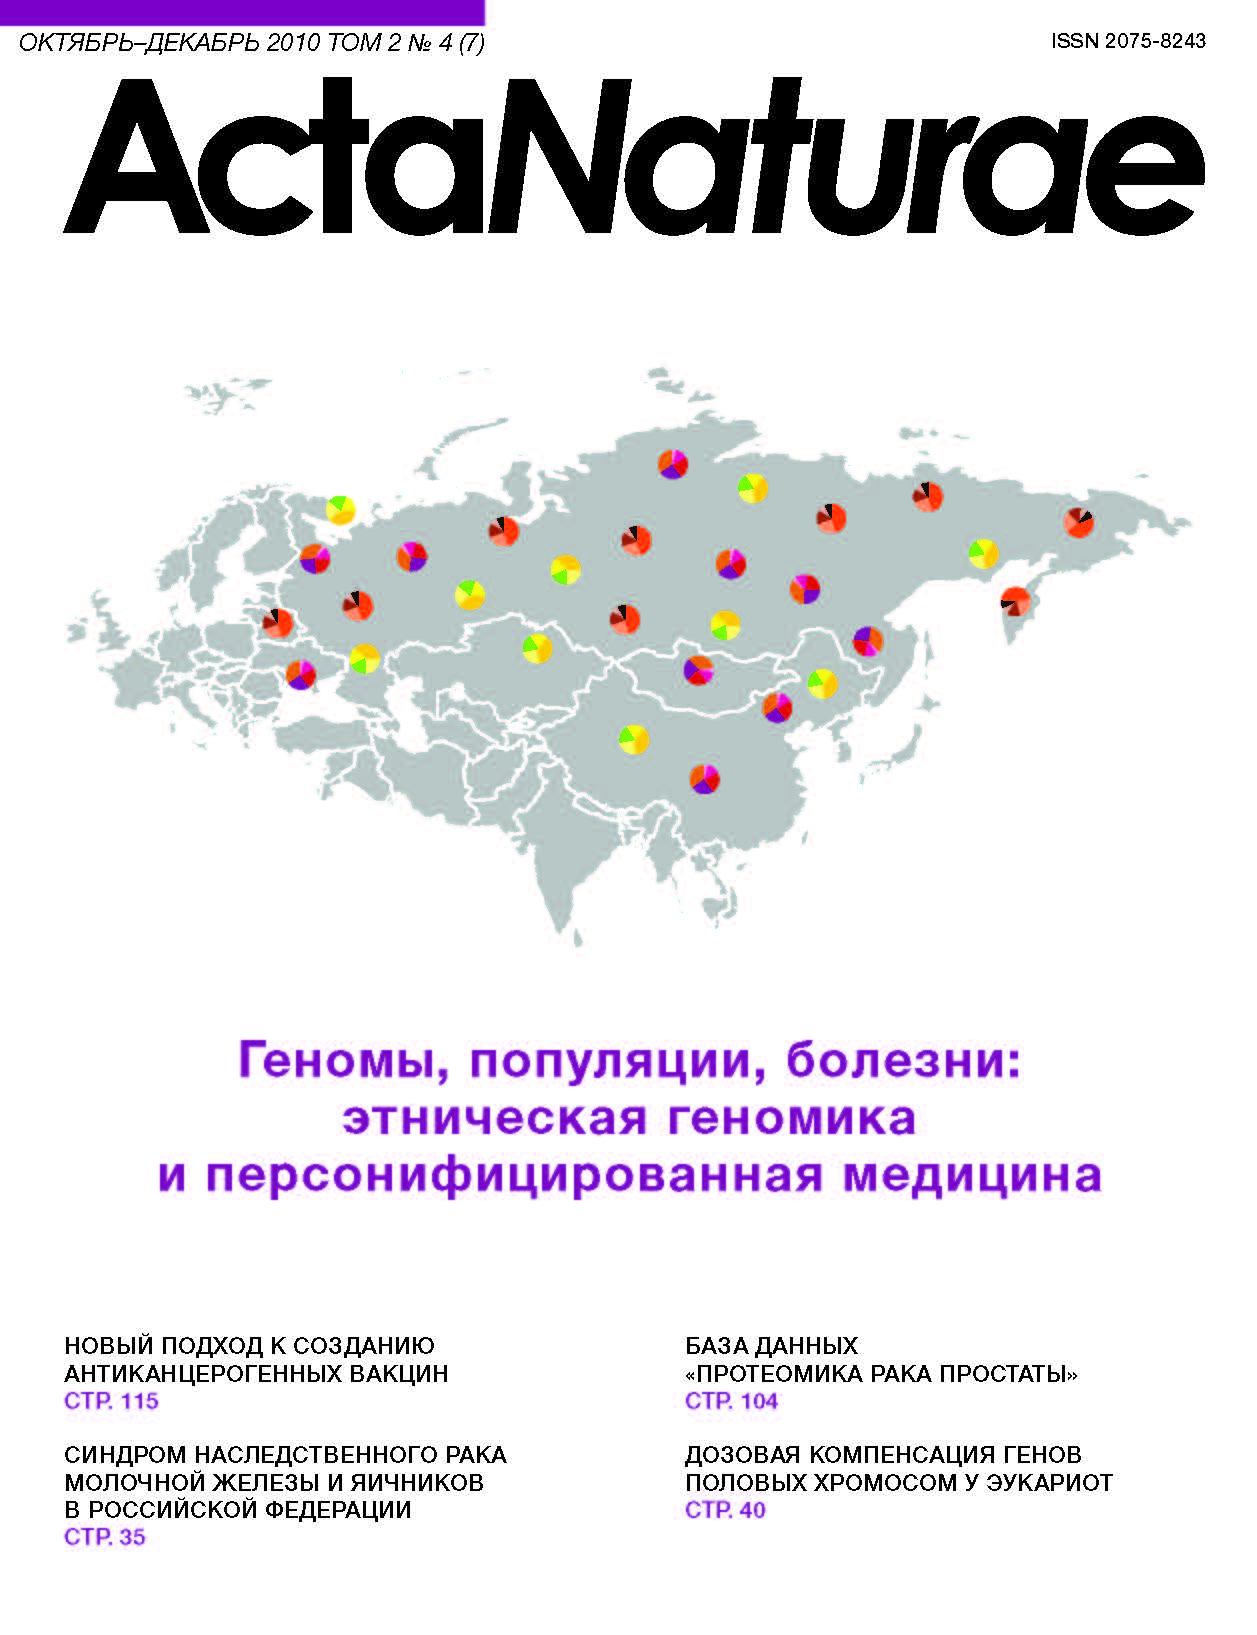 Hereditary Breast Ovarian Cancer Syndrome In Russia Sokolenko Acta Naturae